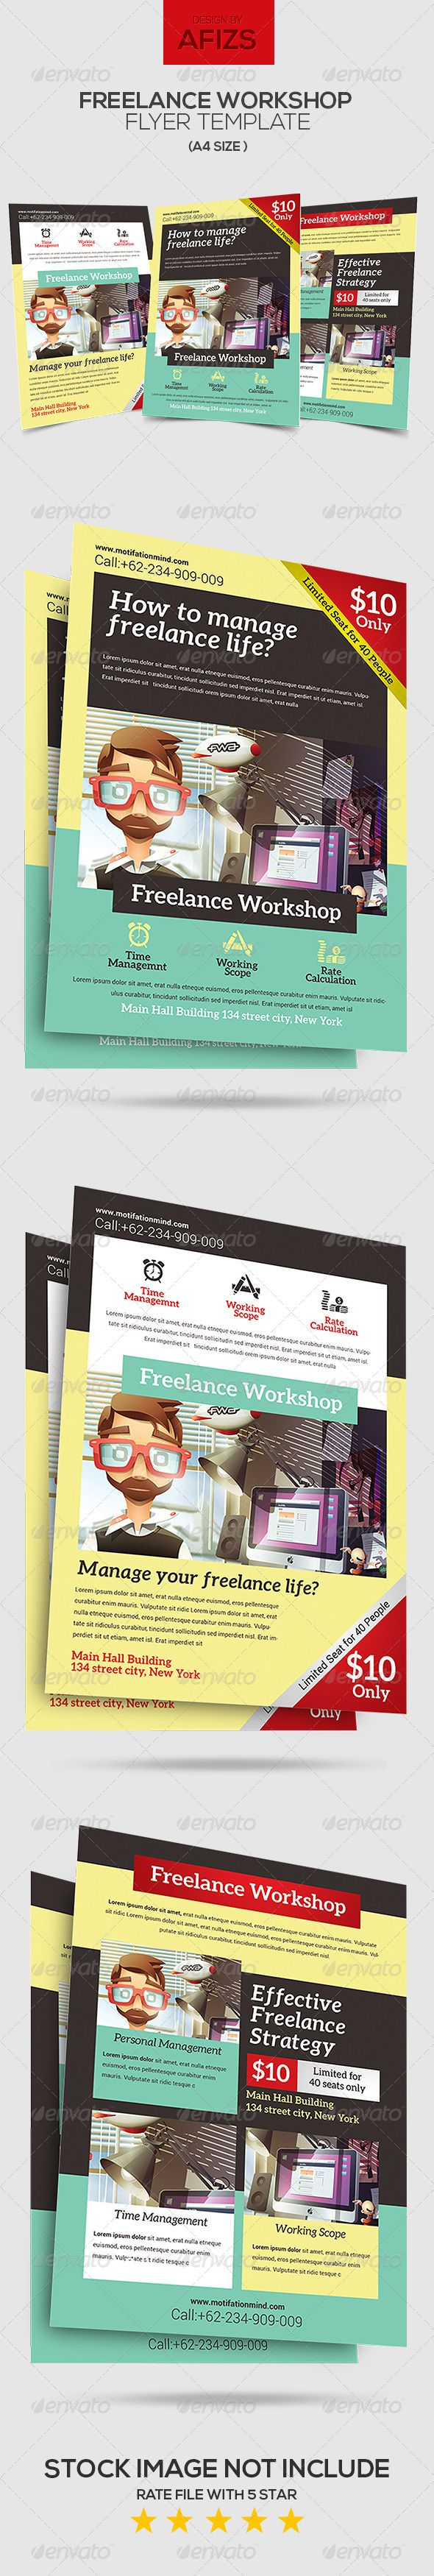 17 images about workshop flyer on pinterest business flyer templates kids events and workshop. Black Bedroom Furniture Sets. Home Design Ideas